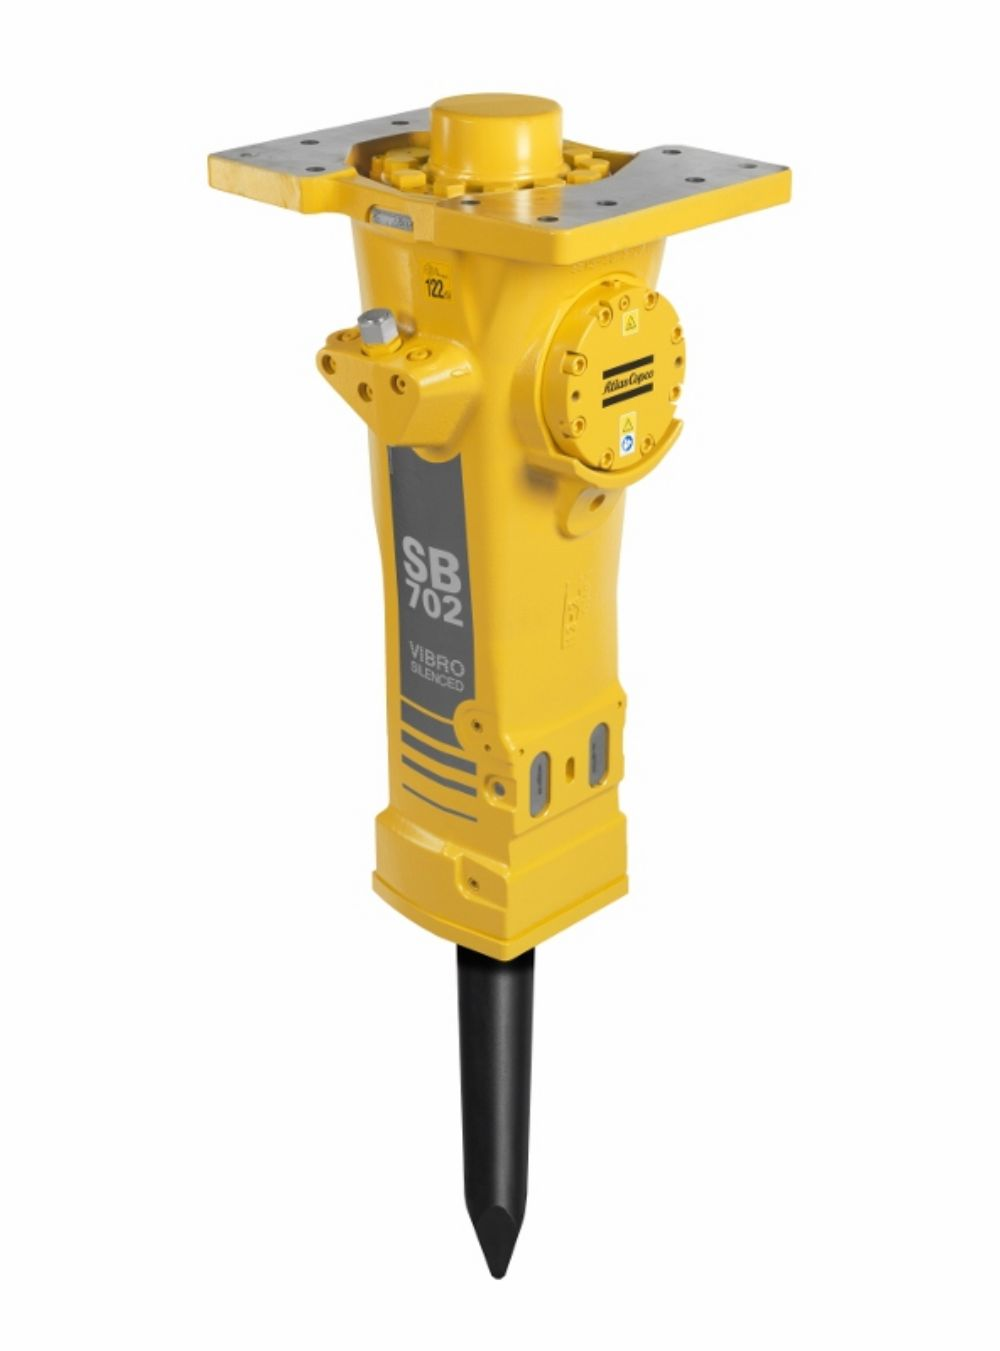 The Atlas Copco SB 702 hydraulic breaker is designed with a solid body.